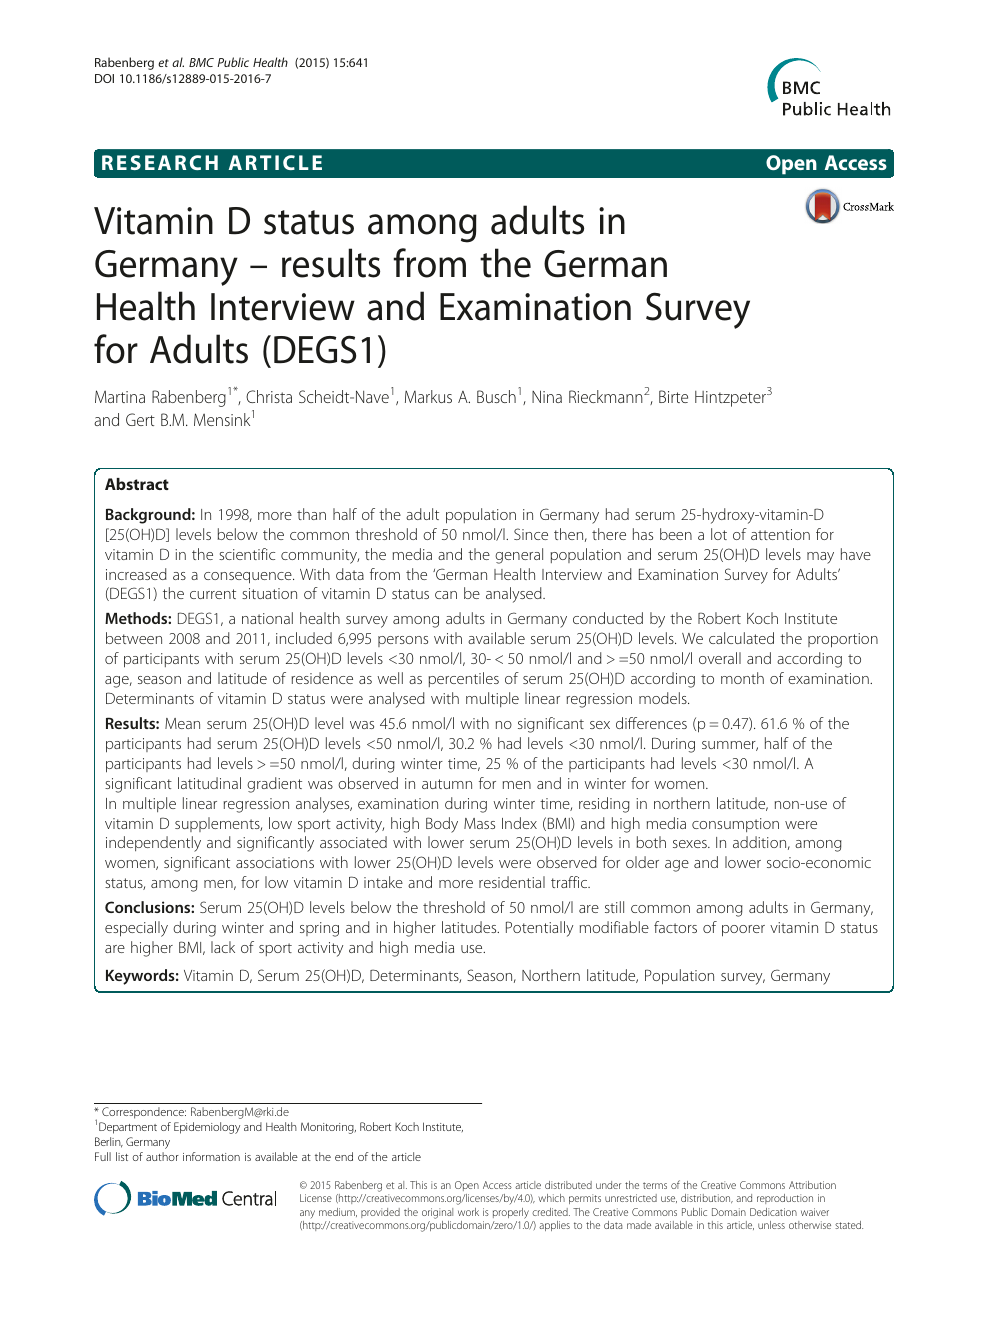 Vitamin D status among adults in Germany – results from the German ...